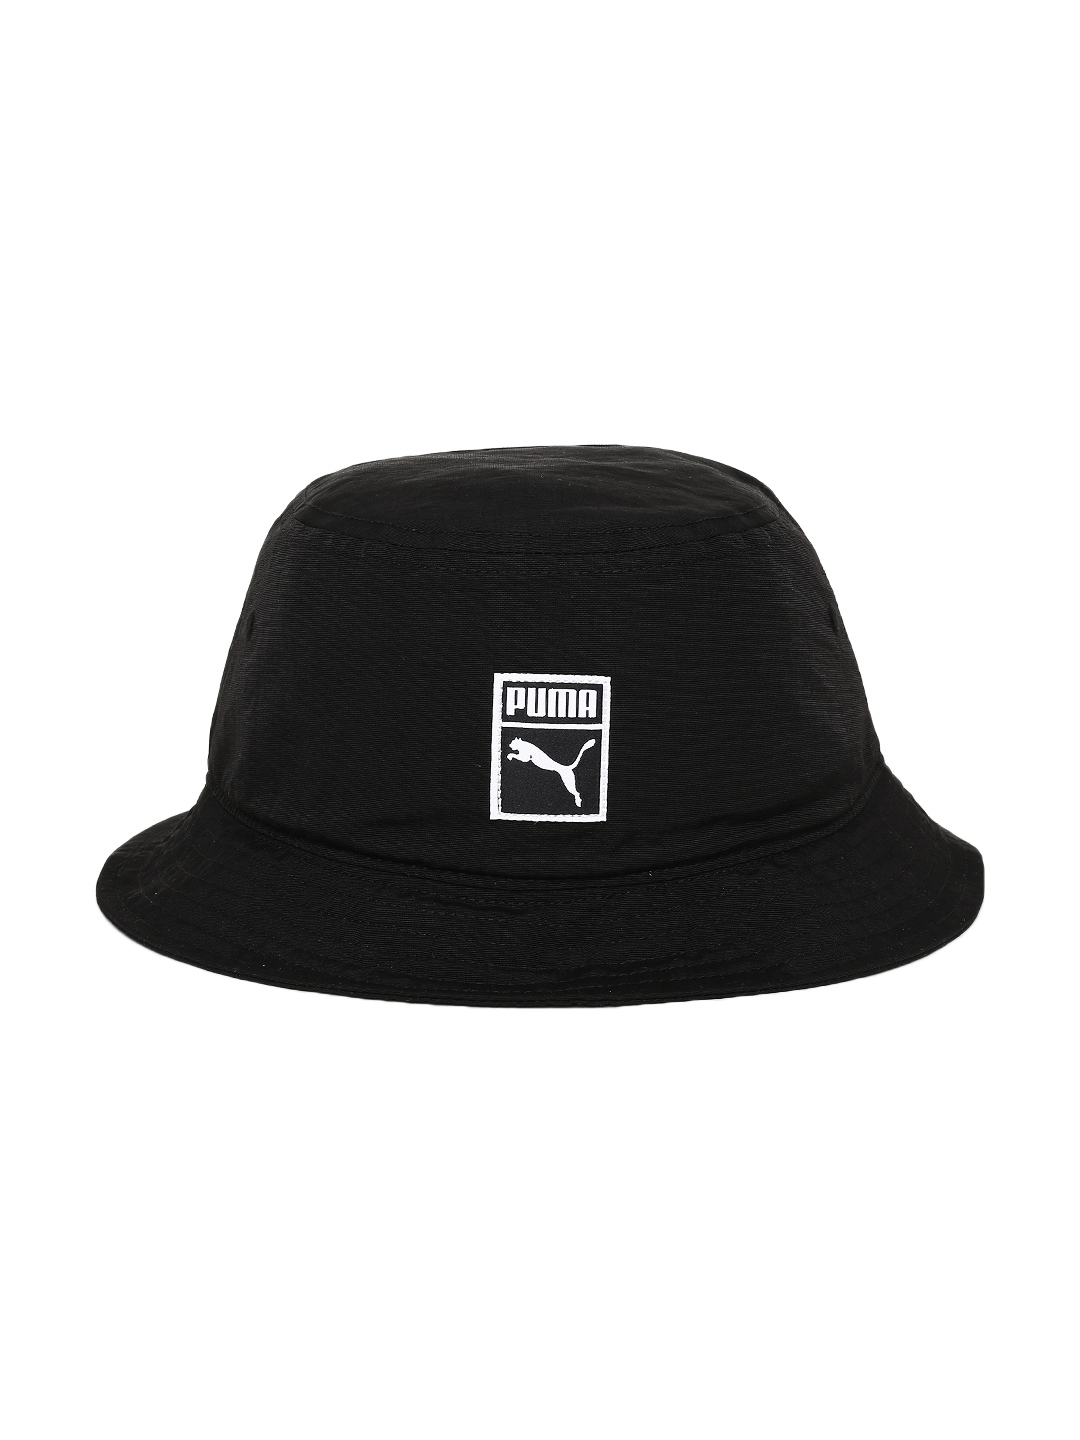 500fc2262c0 Buy Puma Unisex Black ARCHIVE Bucket Hat - Hat for Unisex 2445463 ...